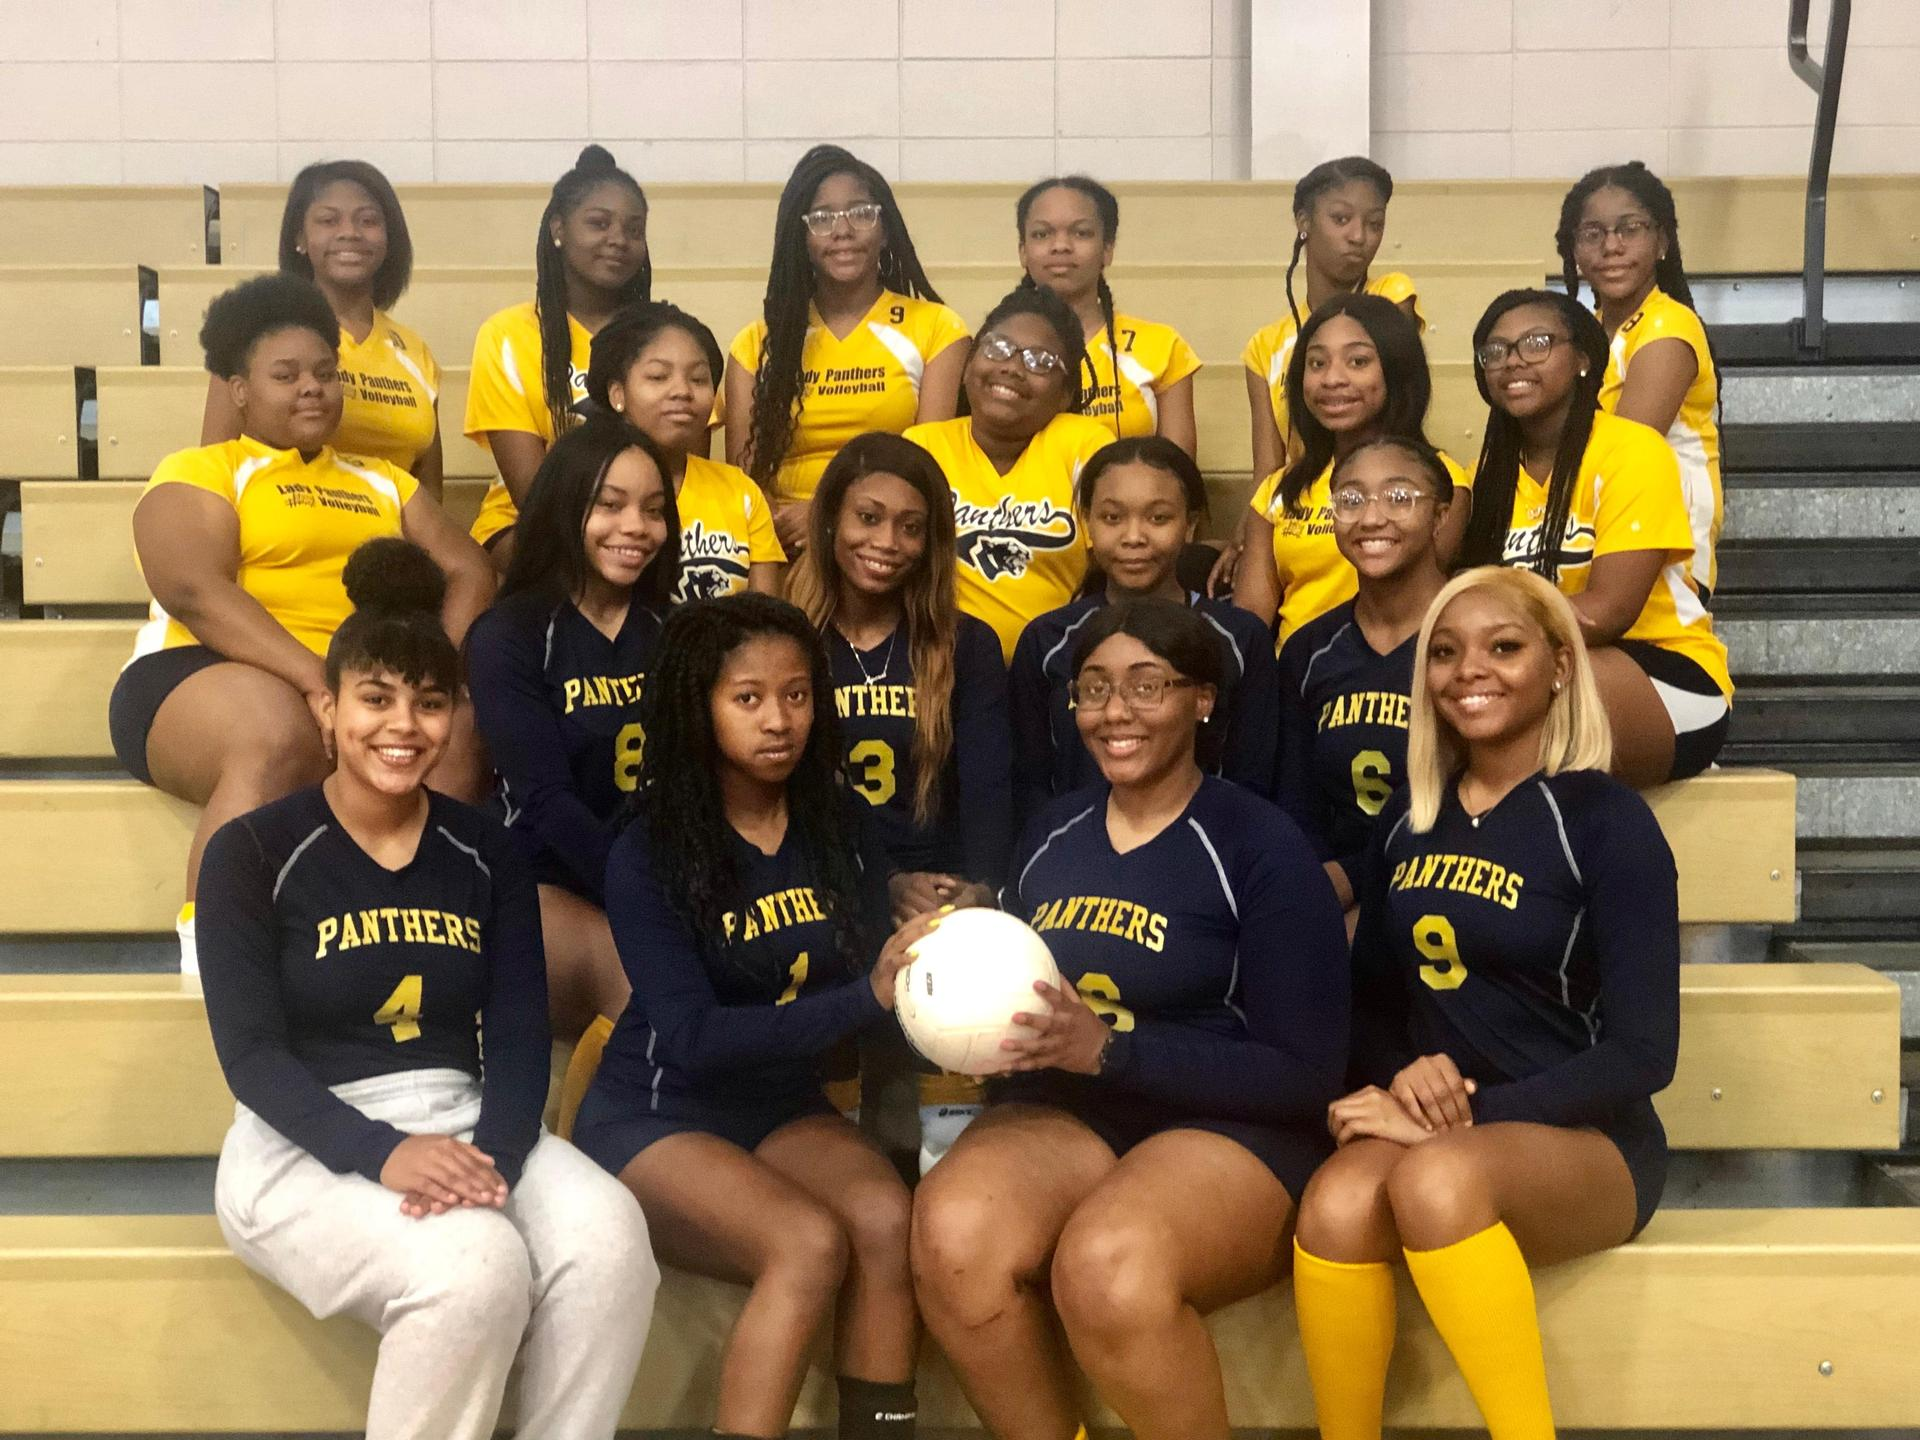 West Lowndes Volleyball Team 2019